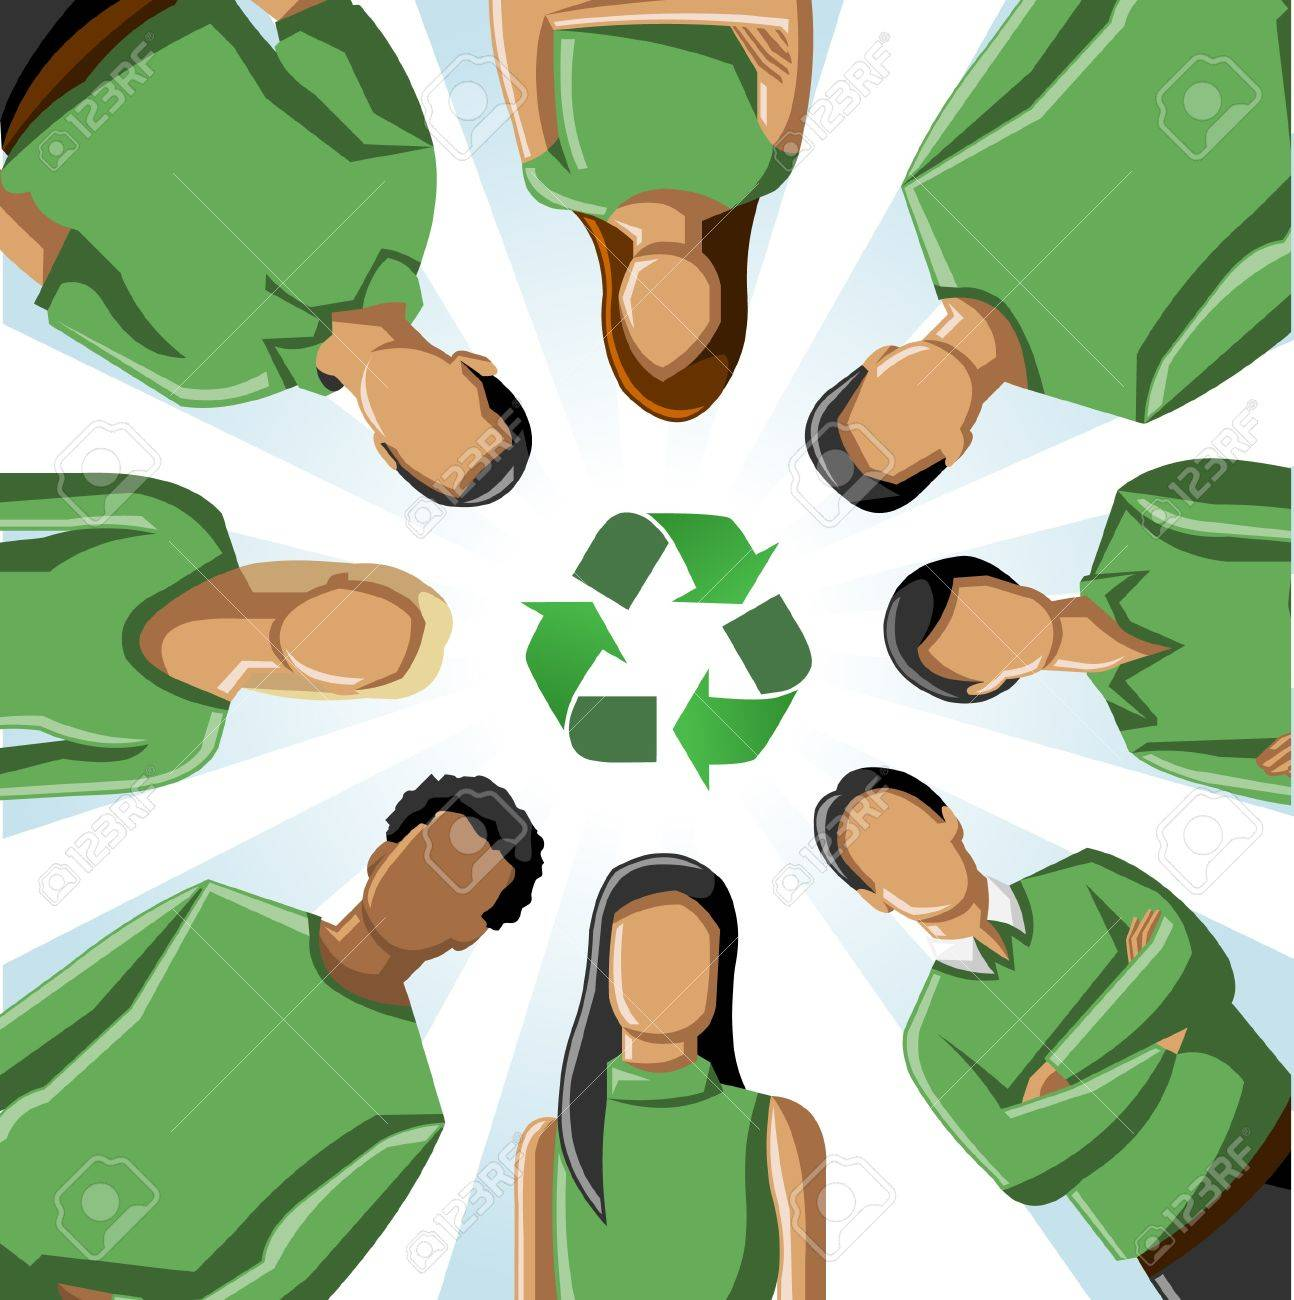 Eco illustration of a circle of people in green clothes with recycling symbol Stock Vector - 16876010